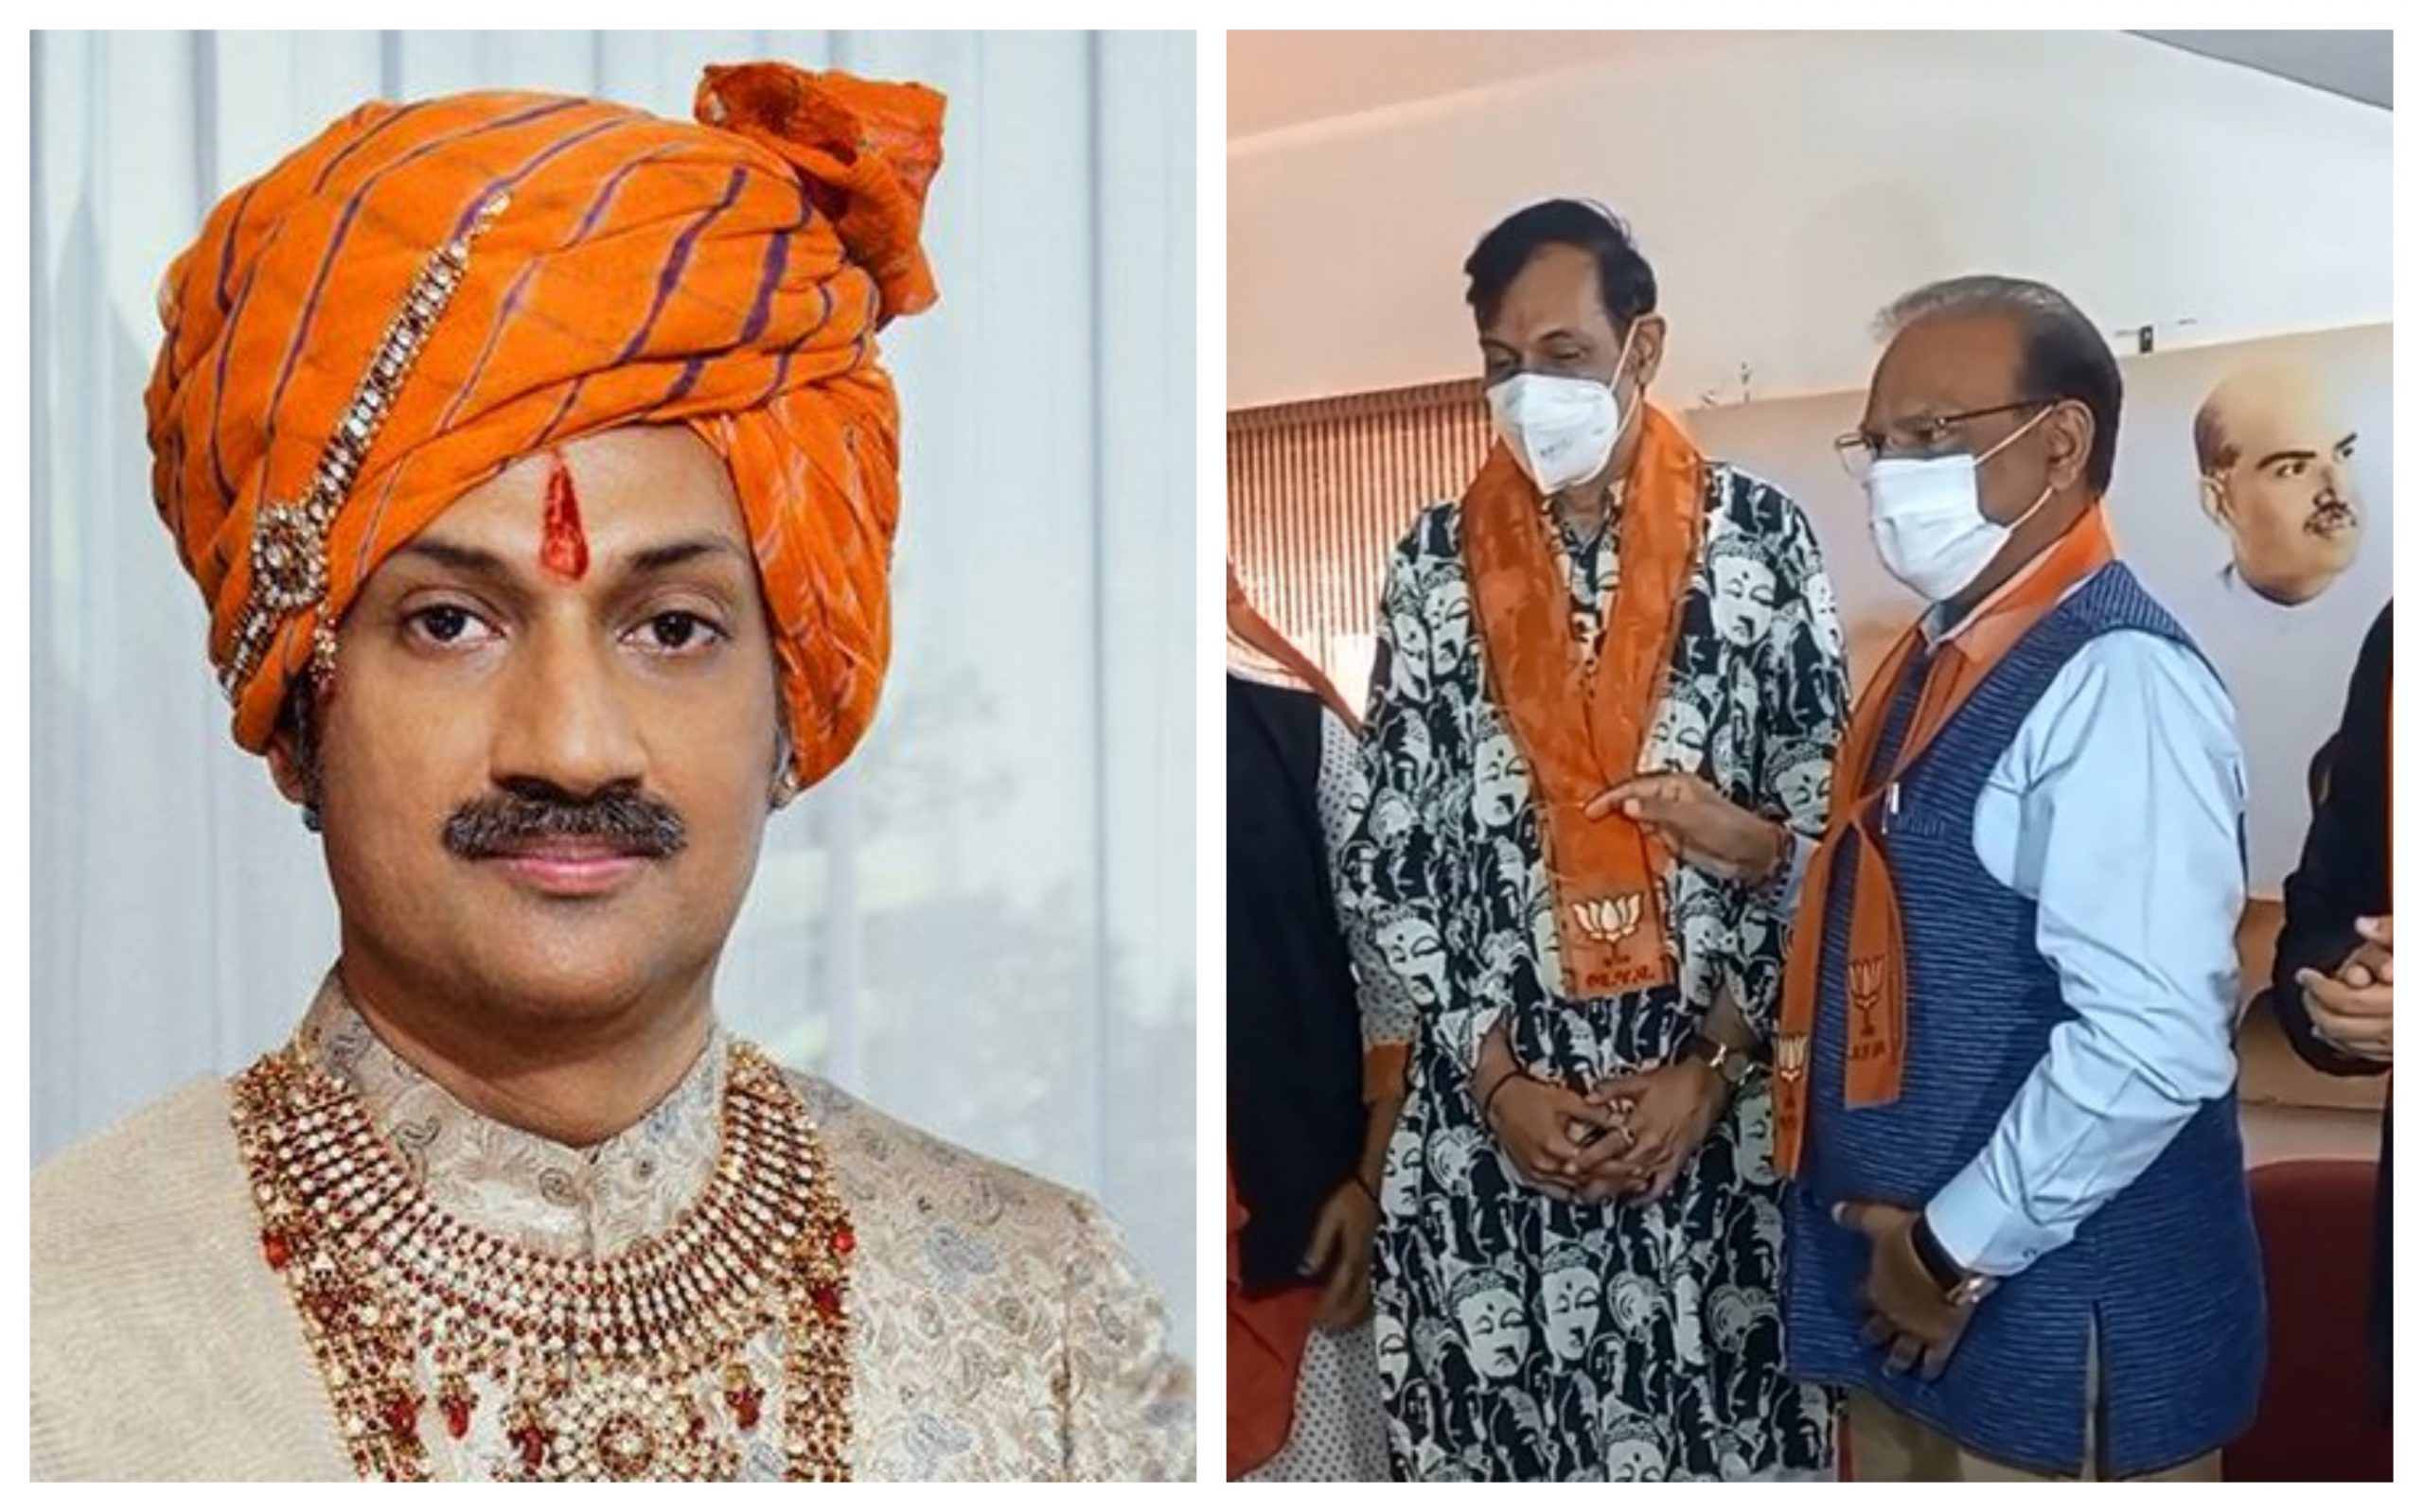 Gujarat: Rajpipla Prince Manvendra Sinh Gohil joins BJP along with large group of transgenders